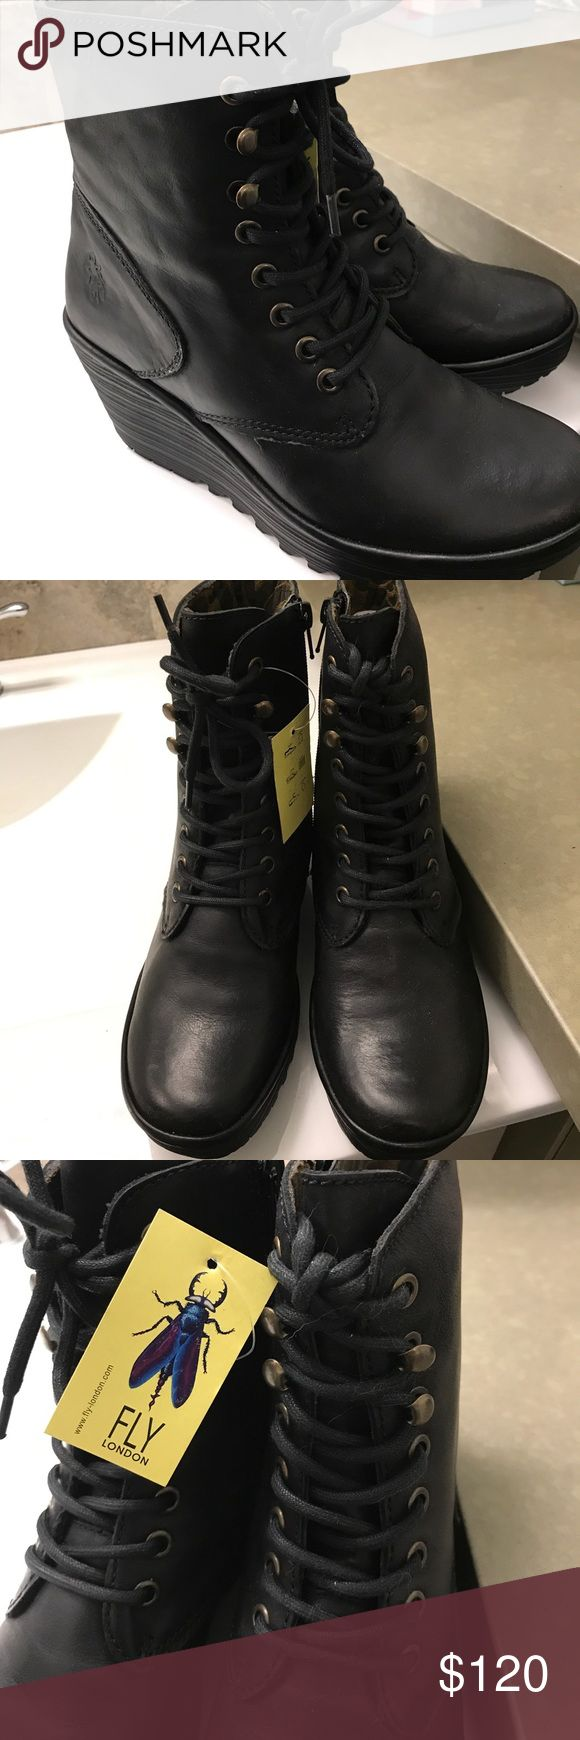 🦋 SALE! 🦋 Fly London Black Wedge Booties Never worn (though without the box). Excellent condition. Size 37. I'm a size 7 and they are a little snug on me. Would fit a size 6.5. I have quite a few pairs of Fly London and they are comfortable. People ask me about them whenever I wear them. Leather. No trades. Fly London Shoes Ankle Boots & Booties